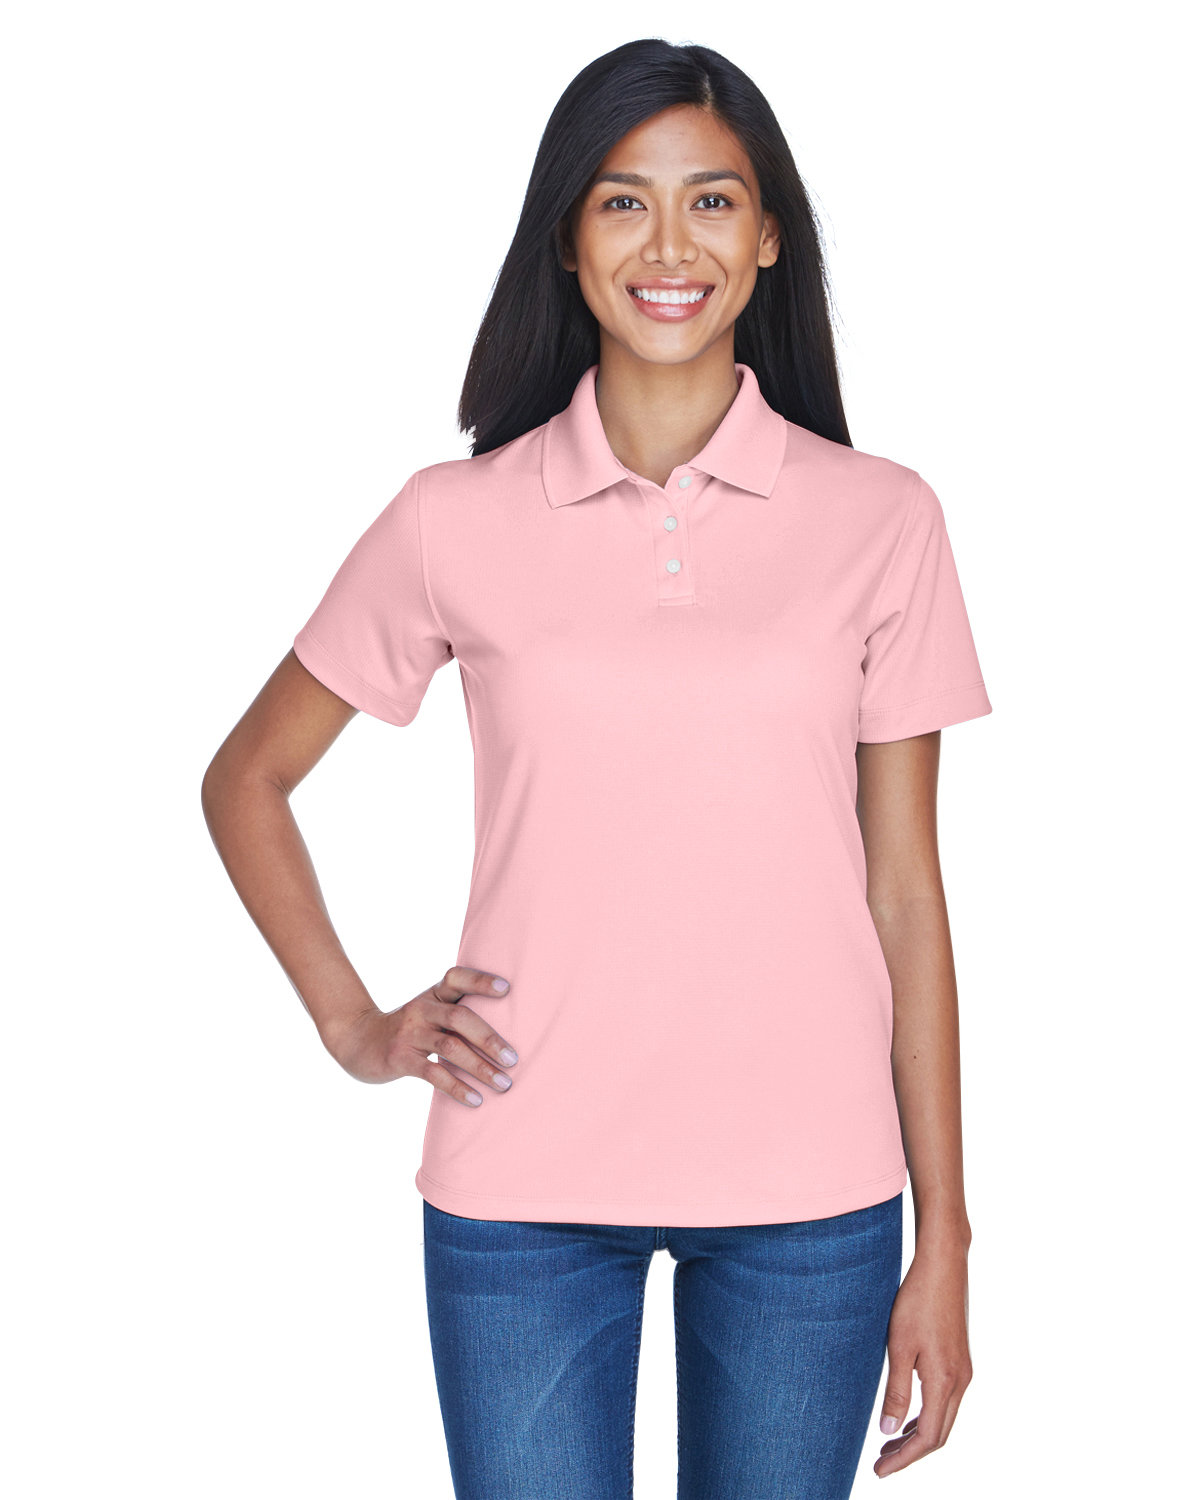 UltraClub Ladies' Cool & Dry Stain-Release Performance Polo PINK